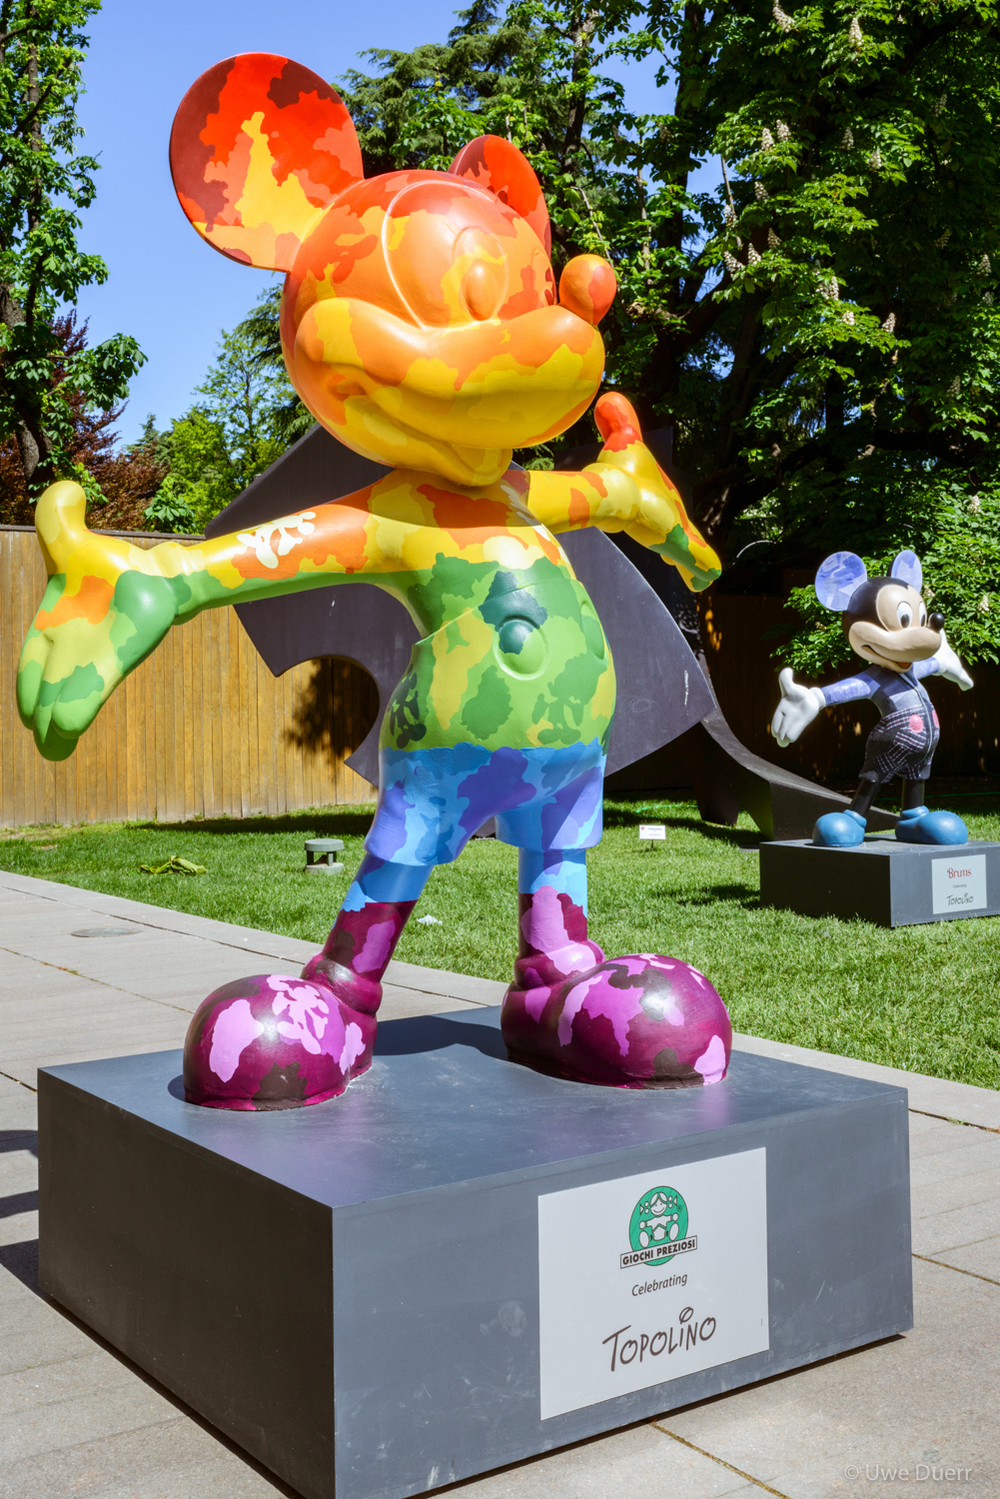 "Exhibition  ""TOPOLINO E L'ITALIA"" , 22 APR - 15 MAY 2016.  The exhibition celebrates the long time connection between the iconic Disney character and Italy. The storytelling, the creativity and the excellent Italian design will be shown in the open-air exhibition. The colors and the design of the works will enchant the visitors."